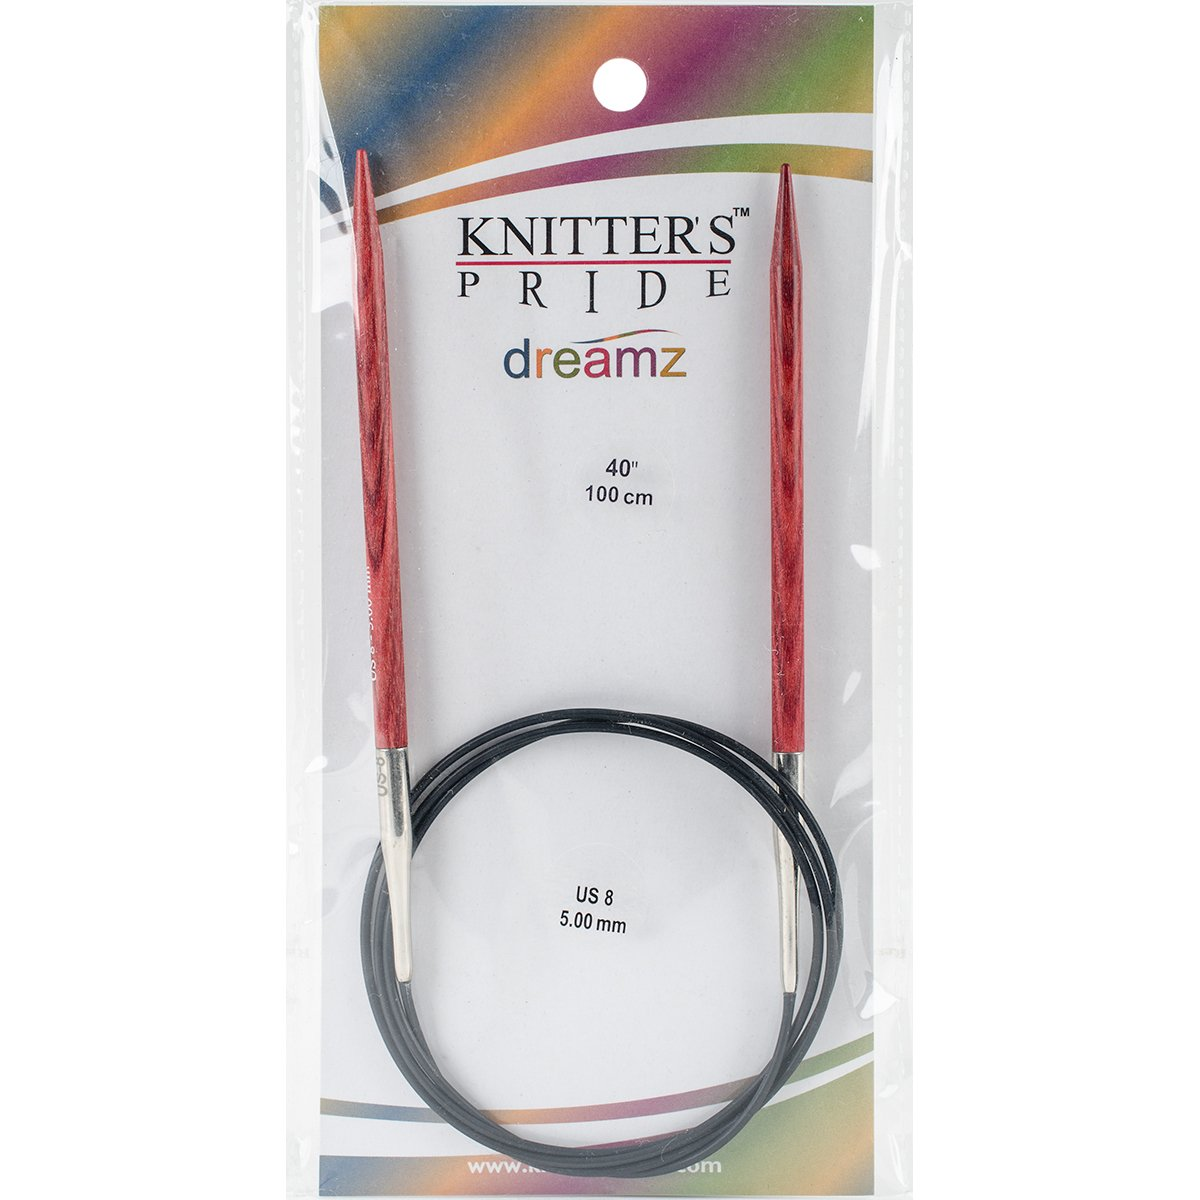 Knitters Pride 15//10mm Dreamz Fixed Circular Needles 40